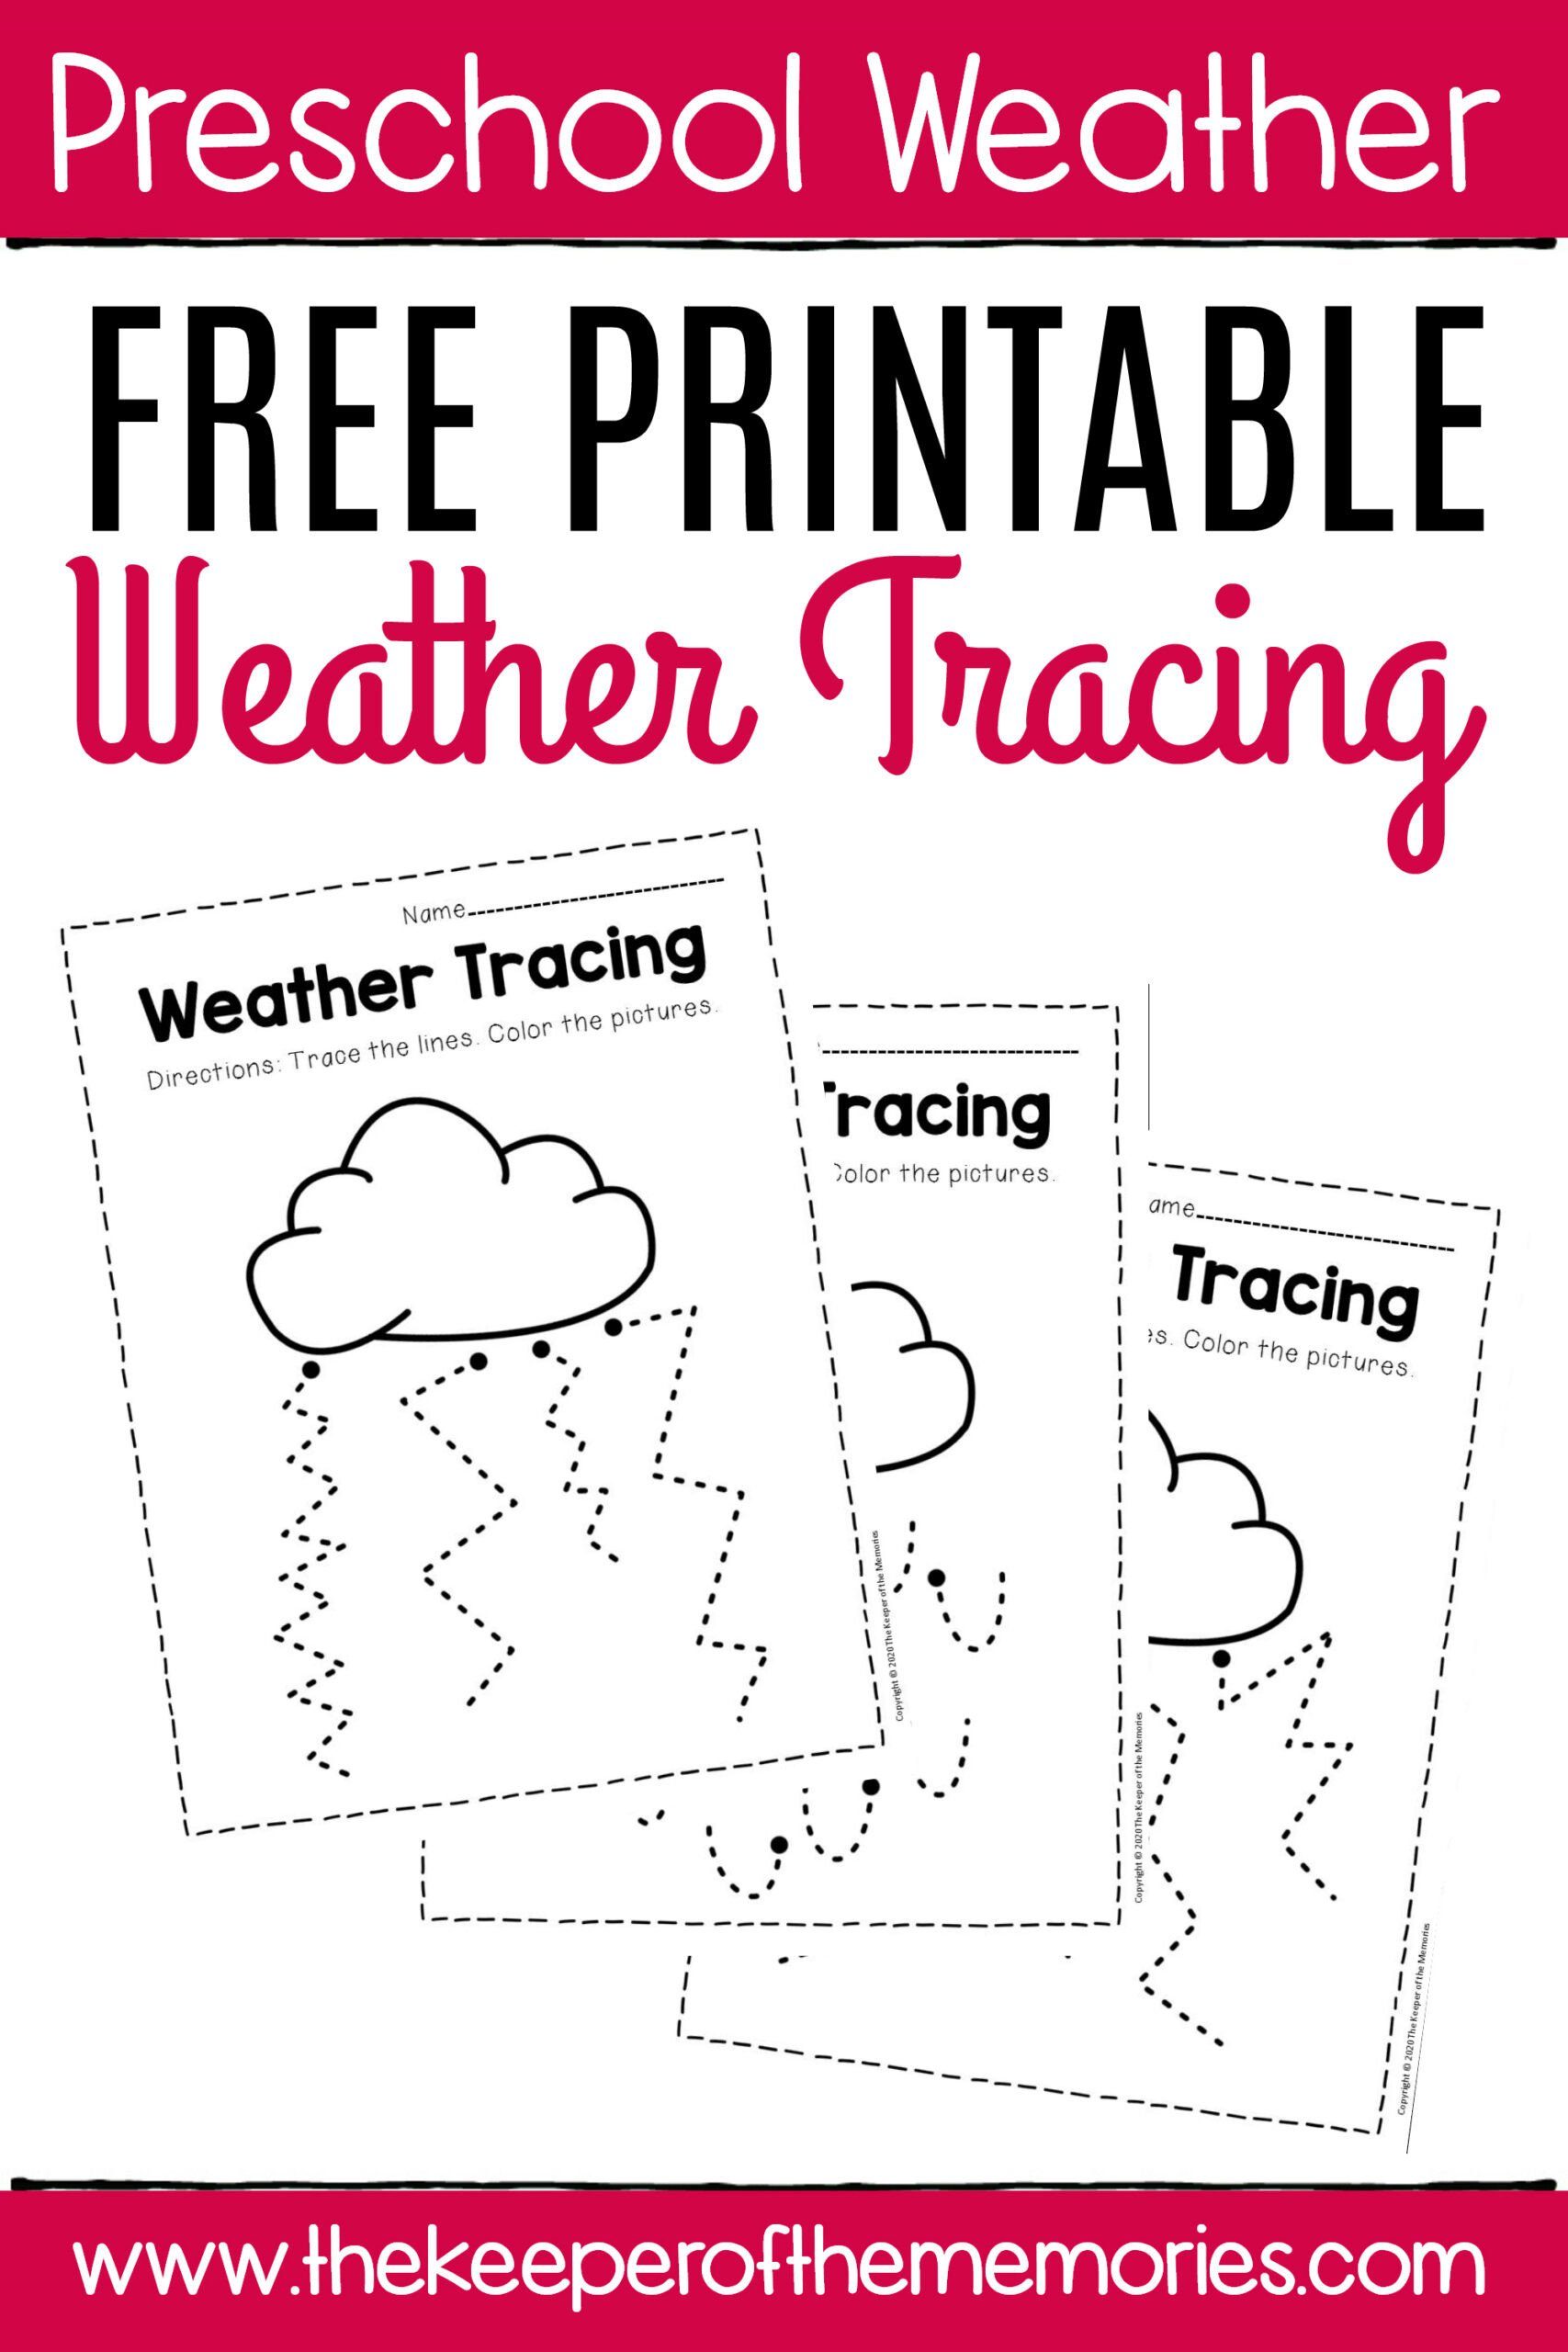 Weather Worksheet for Kindergarten Worksheets Free Printable Storm Clouds Tracing Weather